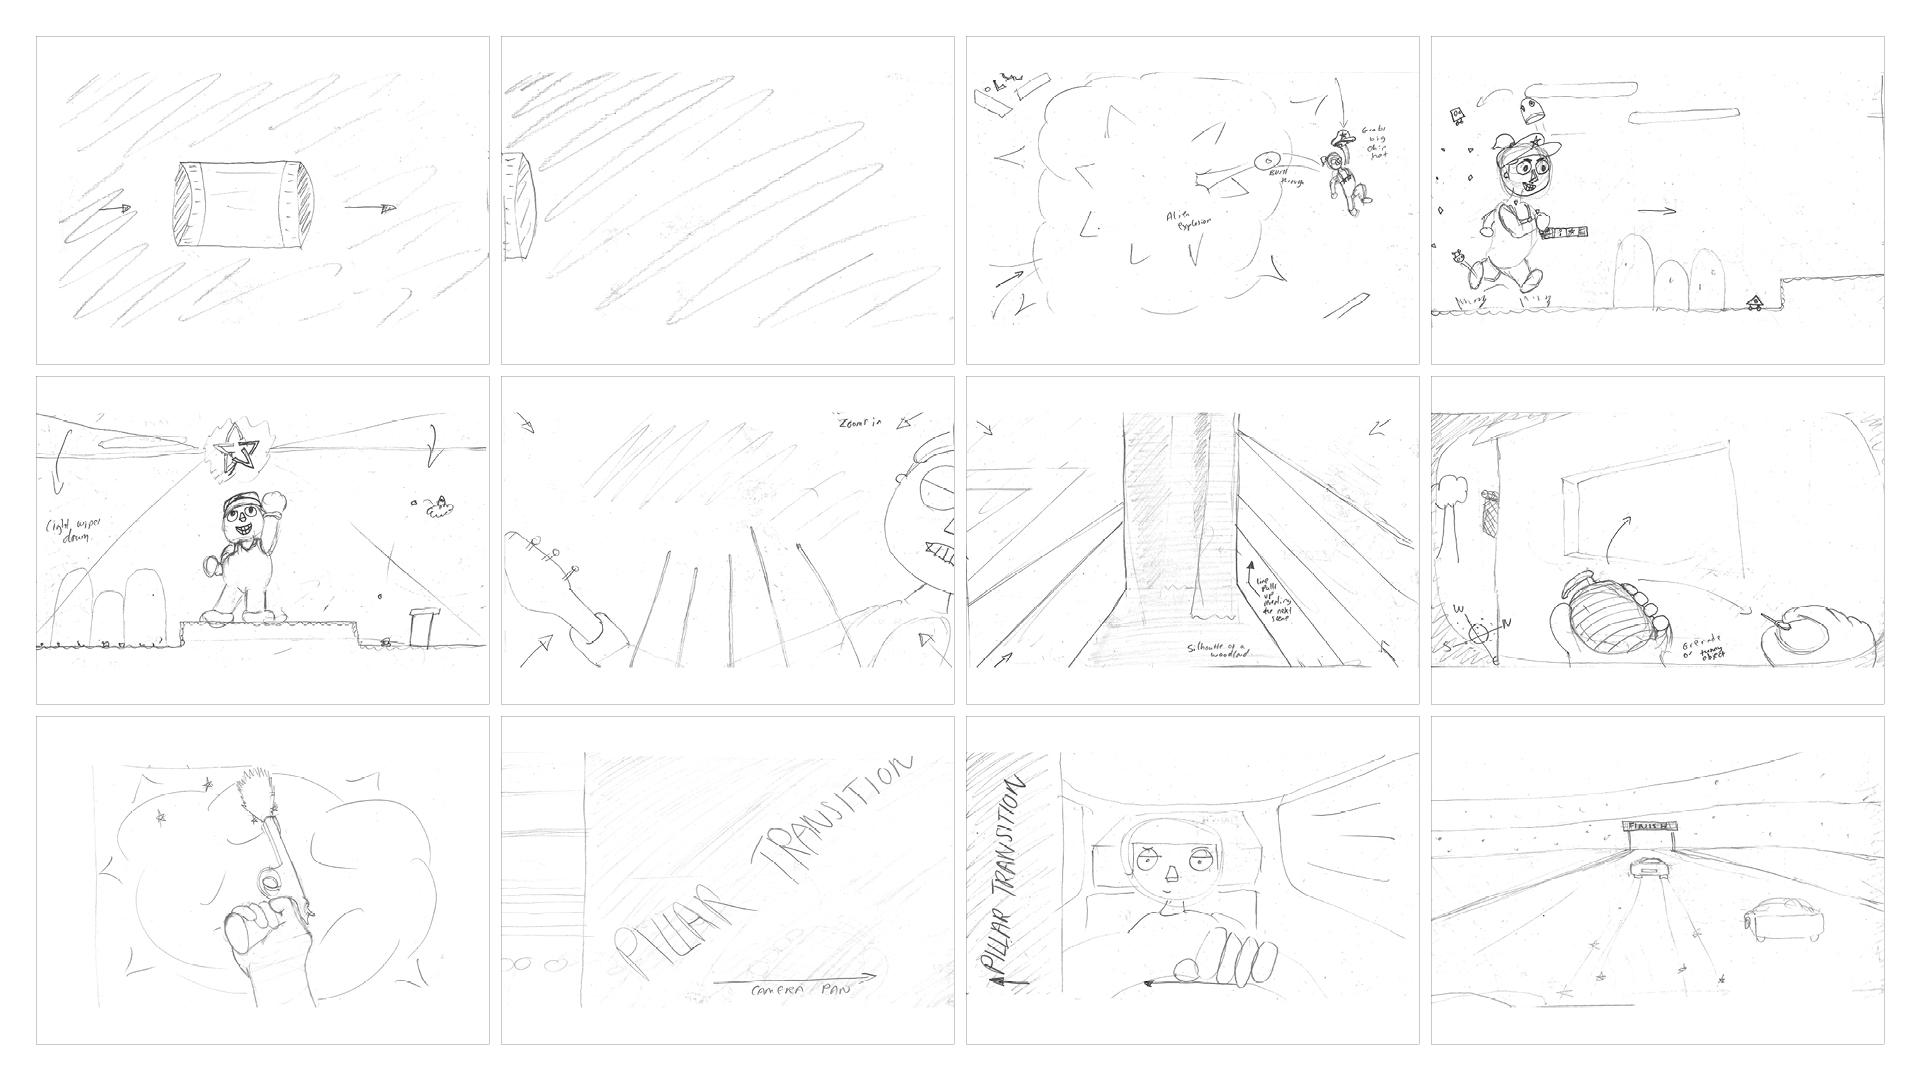 Big Chip Awards animation storyboard